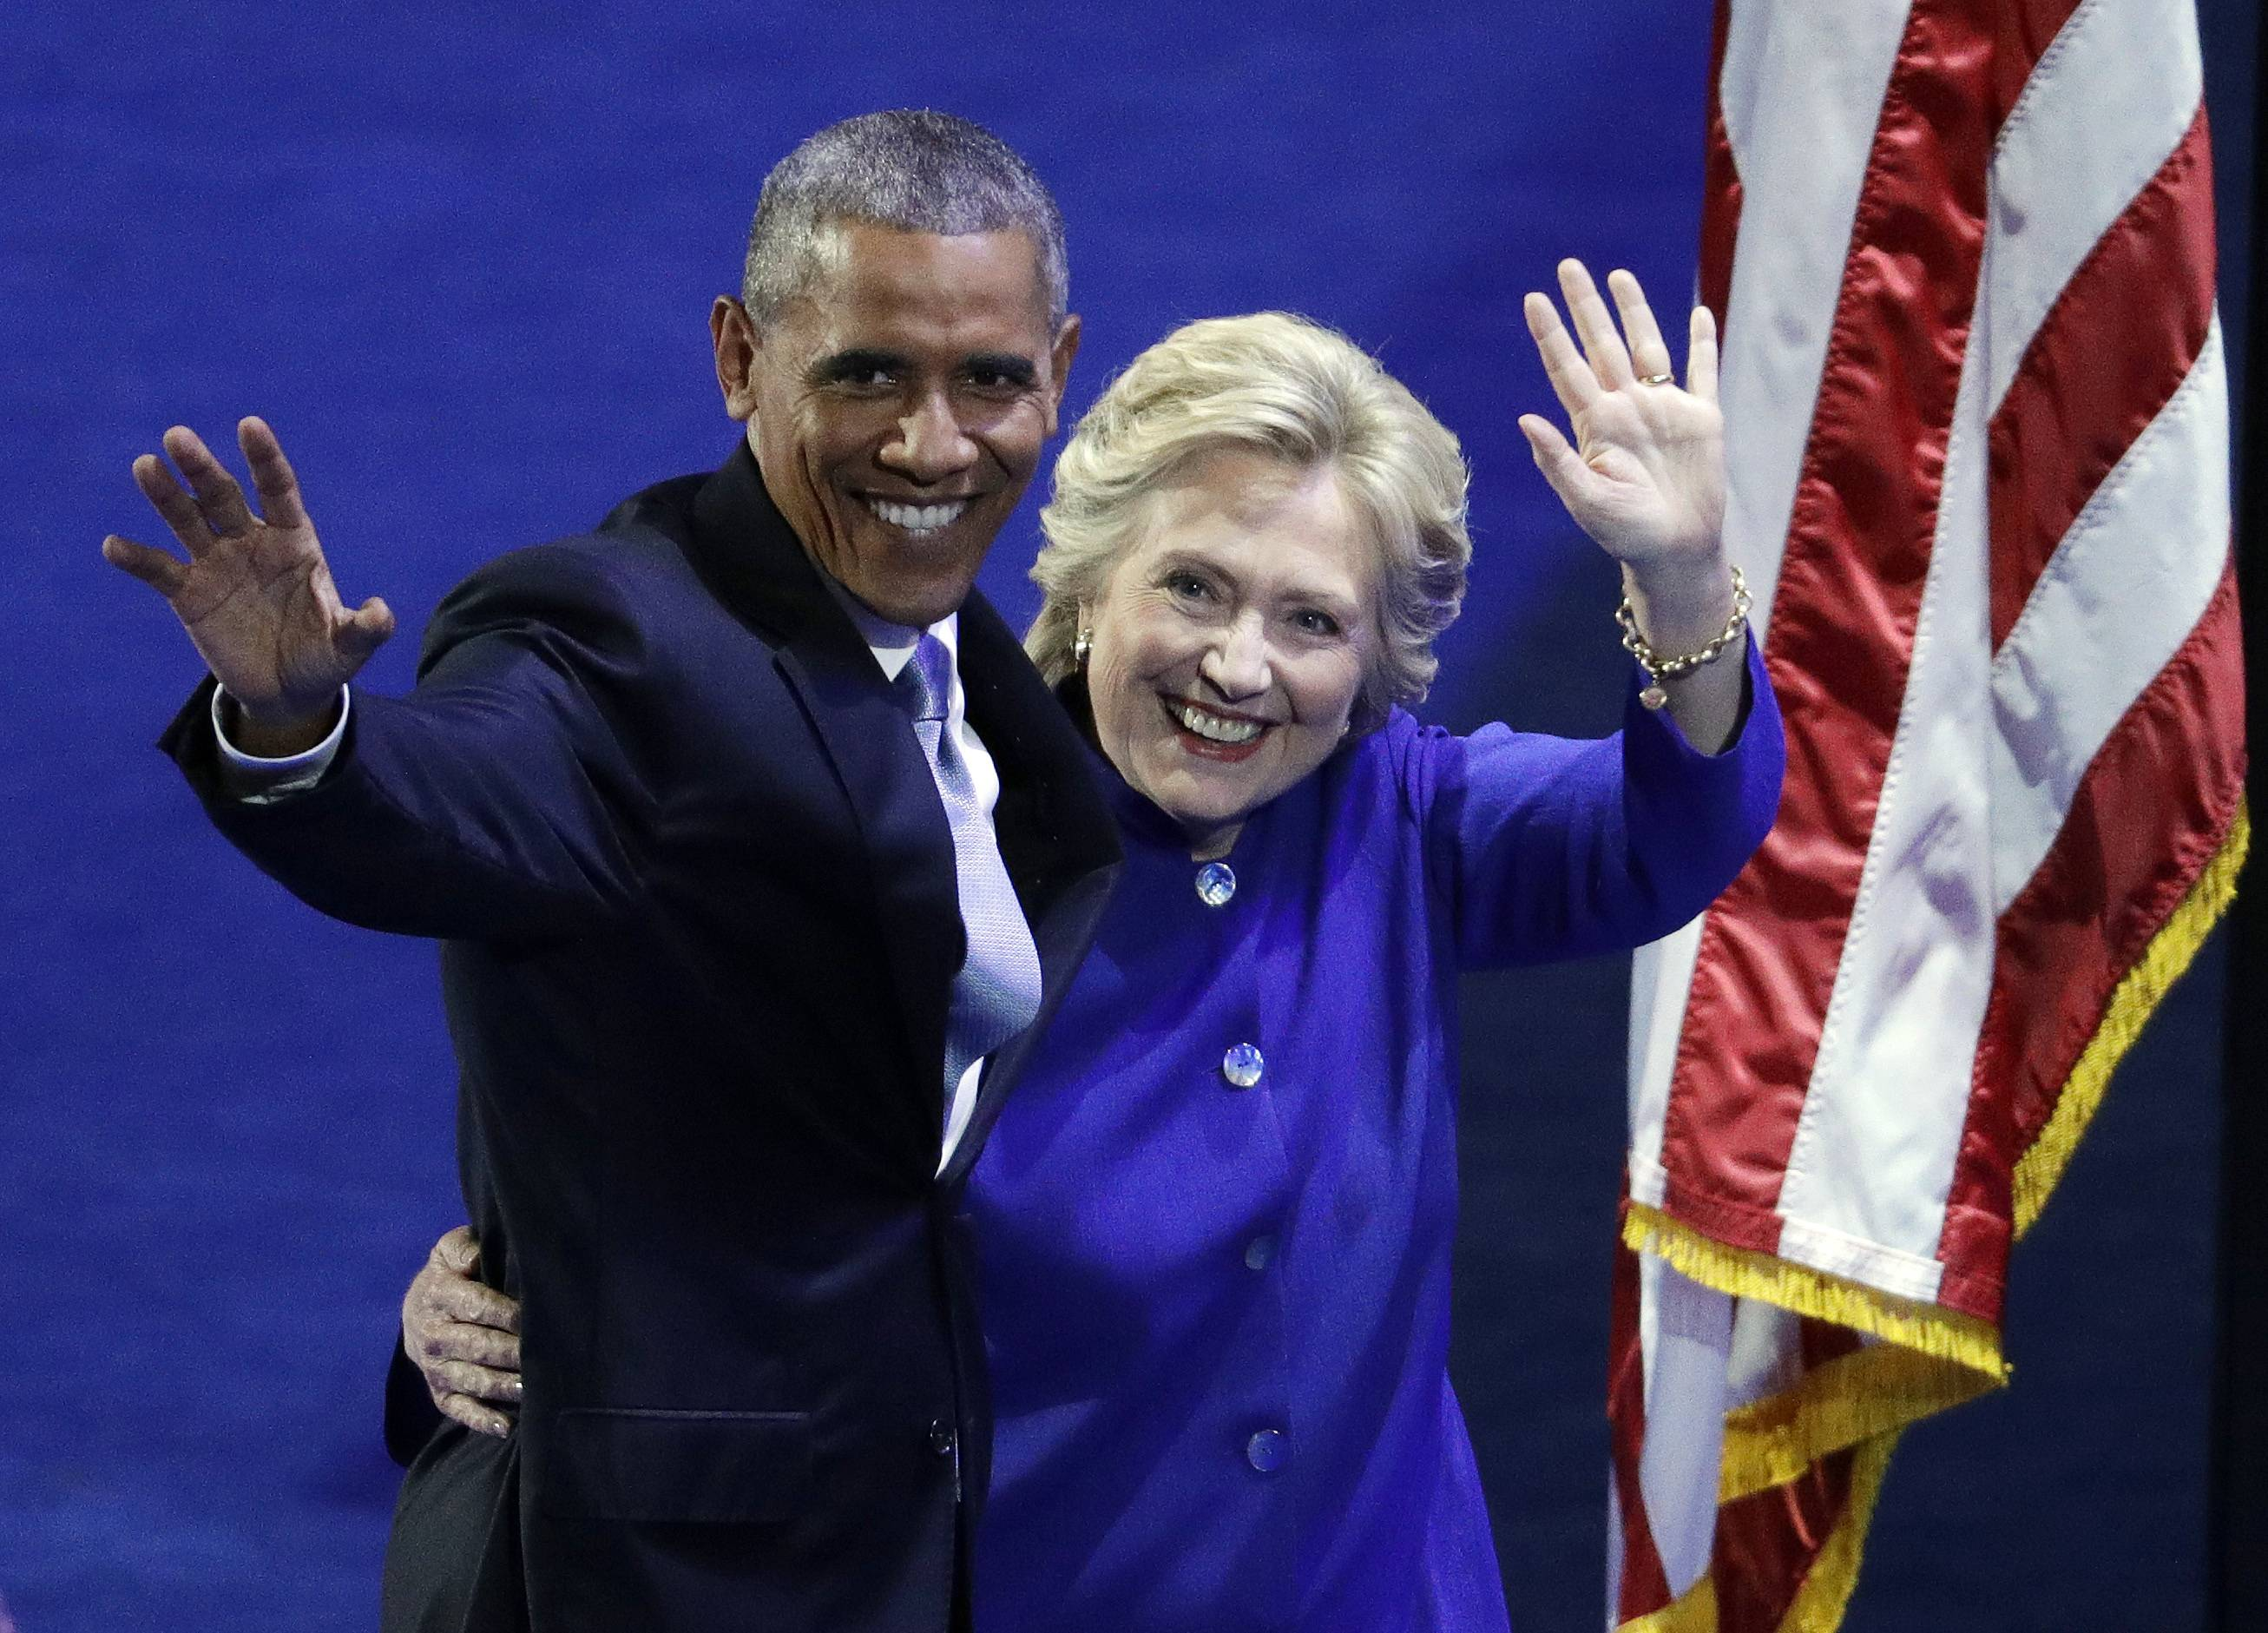 President Barack Obama and Democratic presidential candidate Hillary Clinton wave to the crowd during the third day of the Democratic National Convention, Wednesday, July 27, 2016, in Philadelphia.